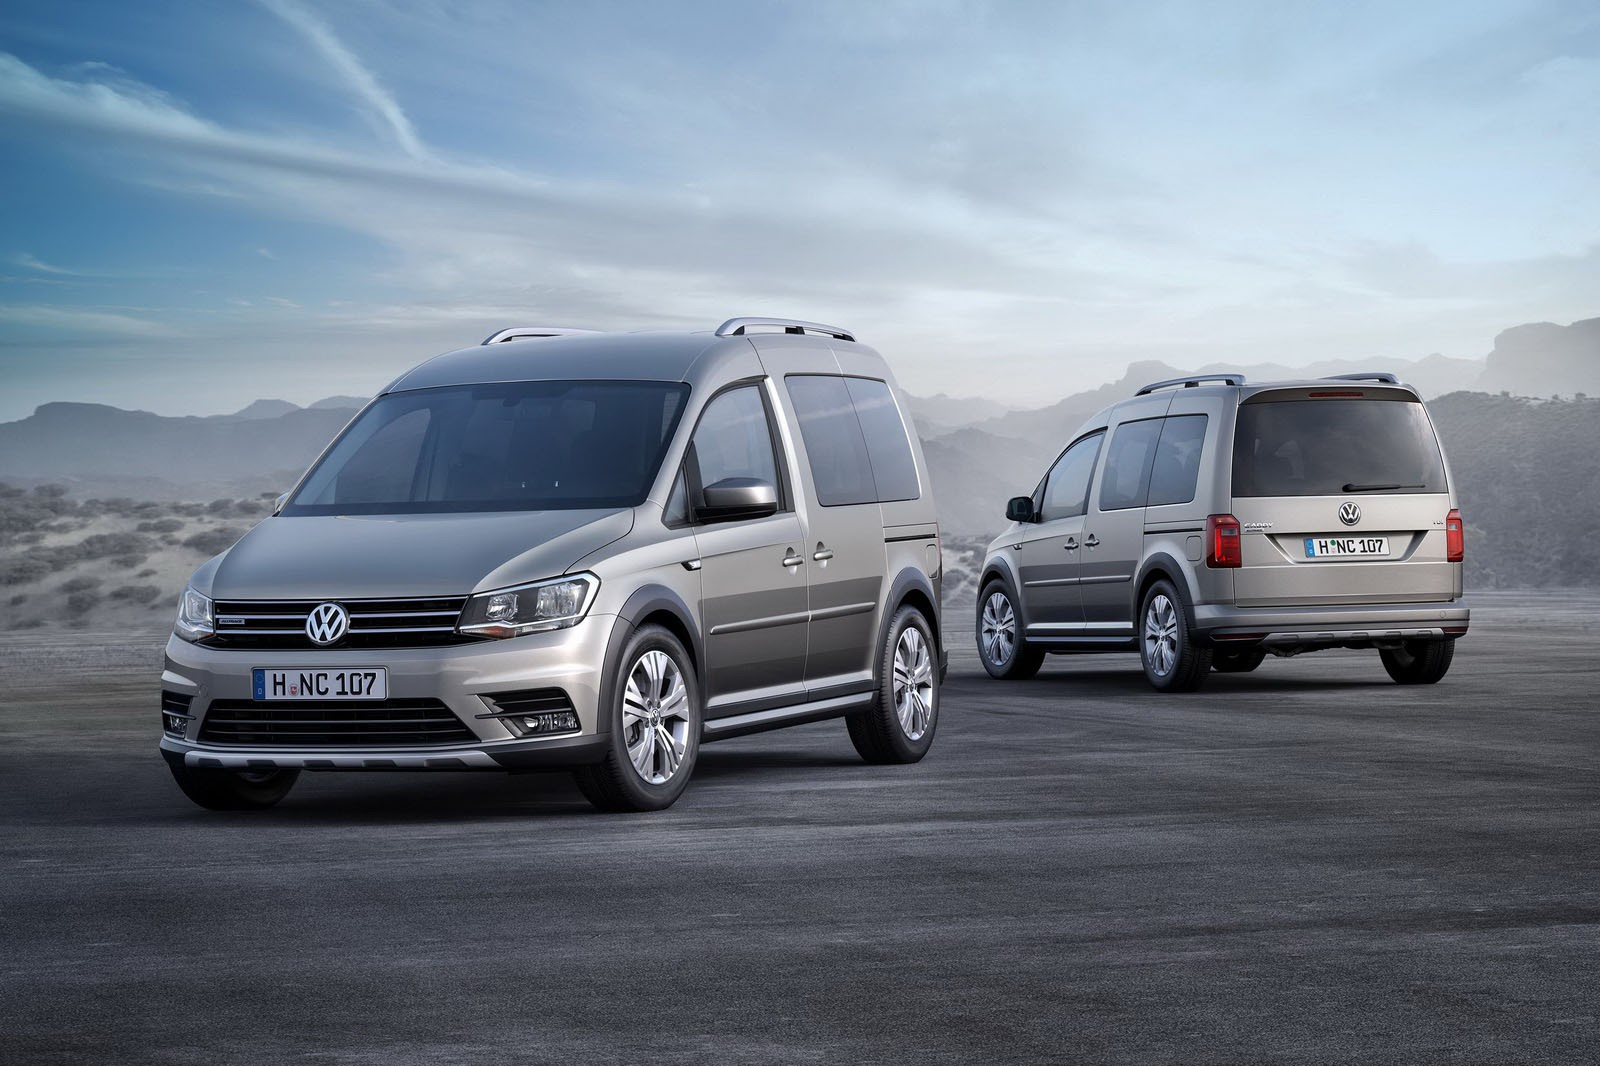 http://avtomaniya.com/pubsource/photo/11031/vw-caddy-alltrack-8jpg.jpg